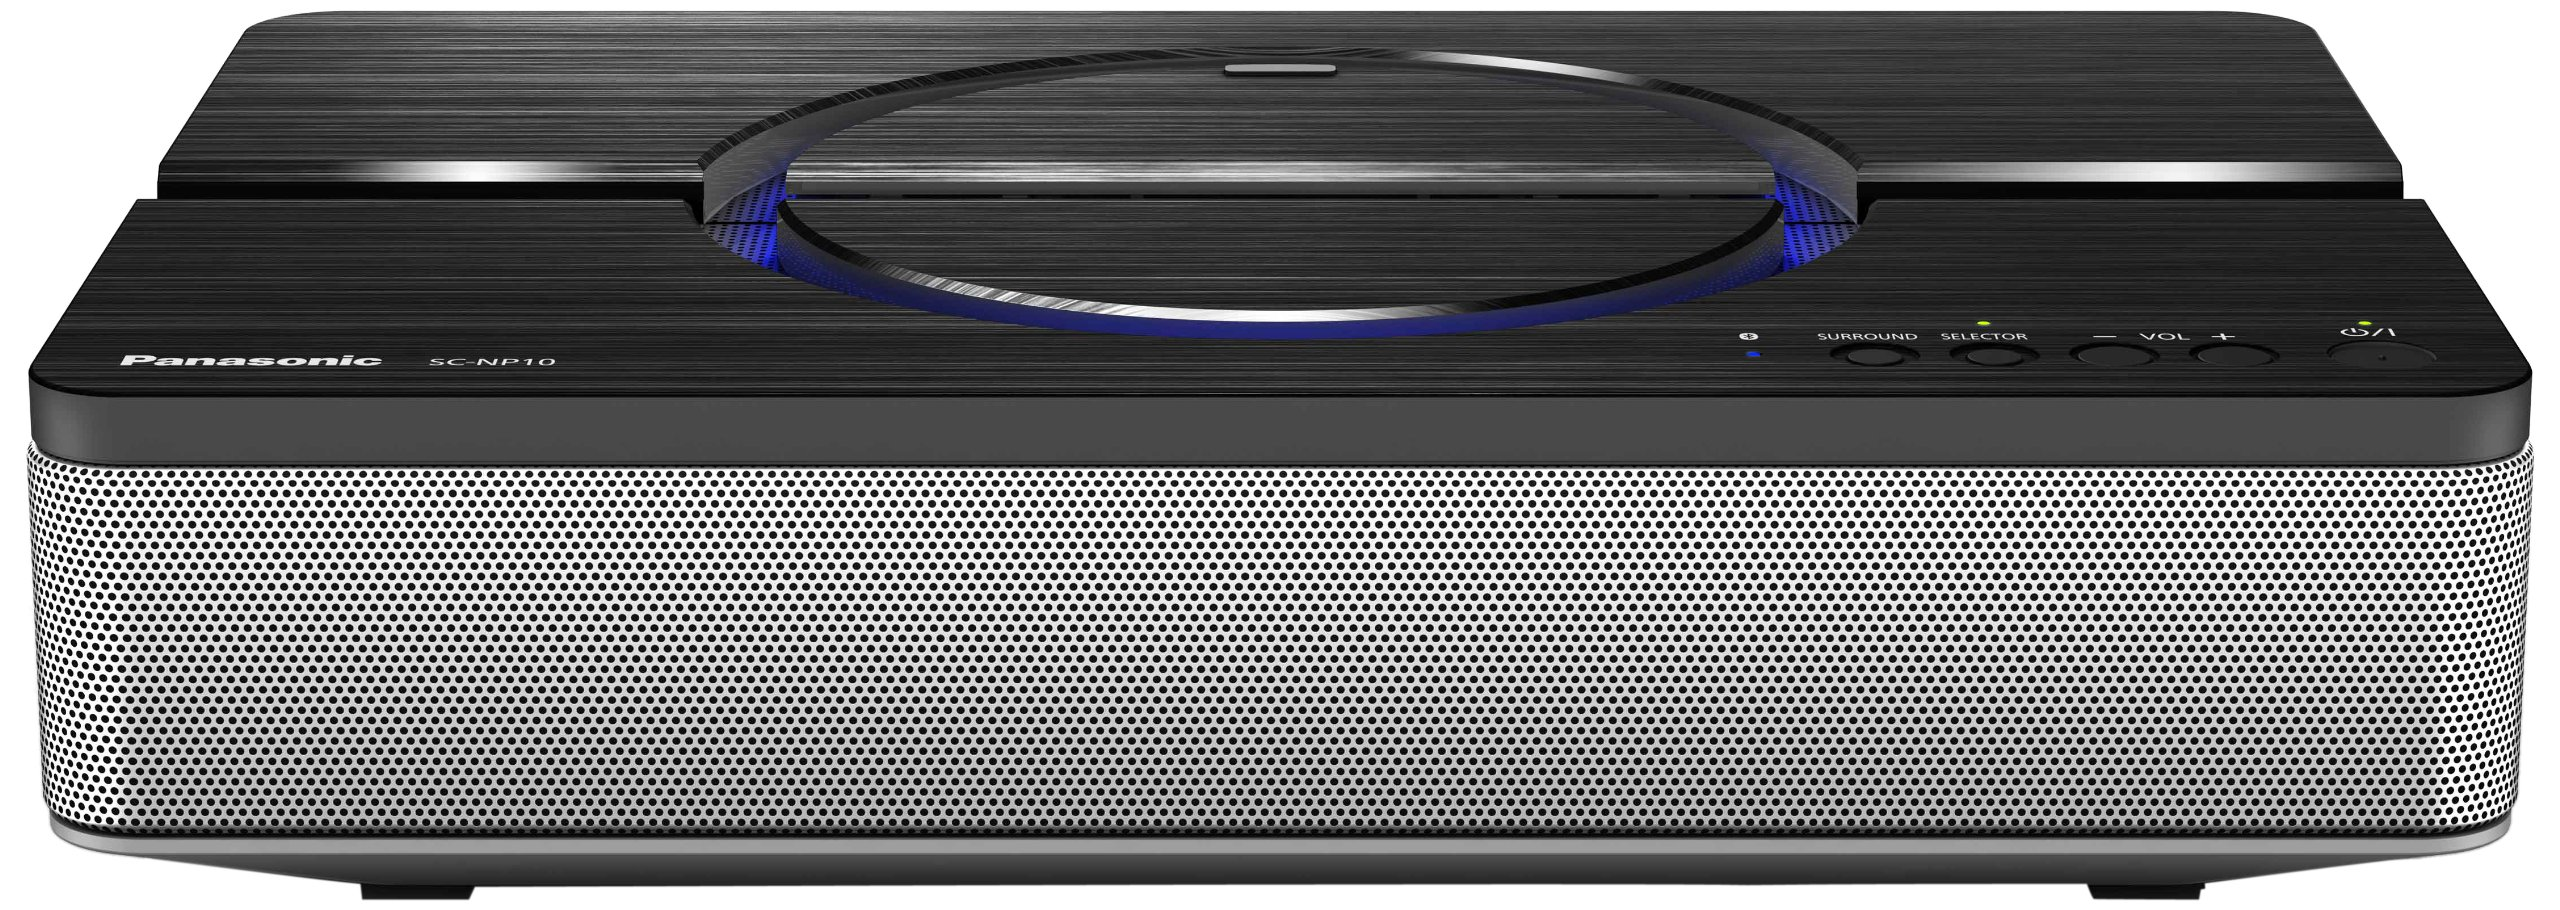 Panasonic SC-NP10 Compact desktop Wireless Speaker System with Subwoofer (Discontinued by Manufacturer) by Panasonic (Image #3)